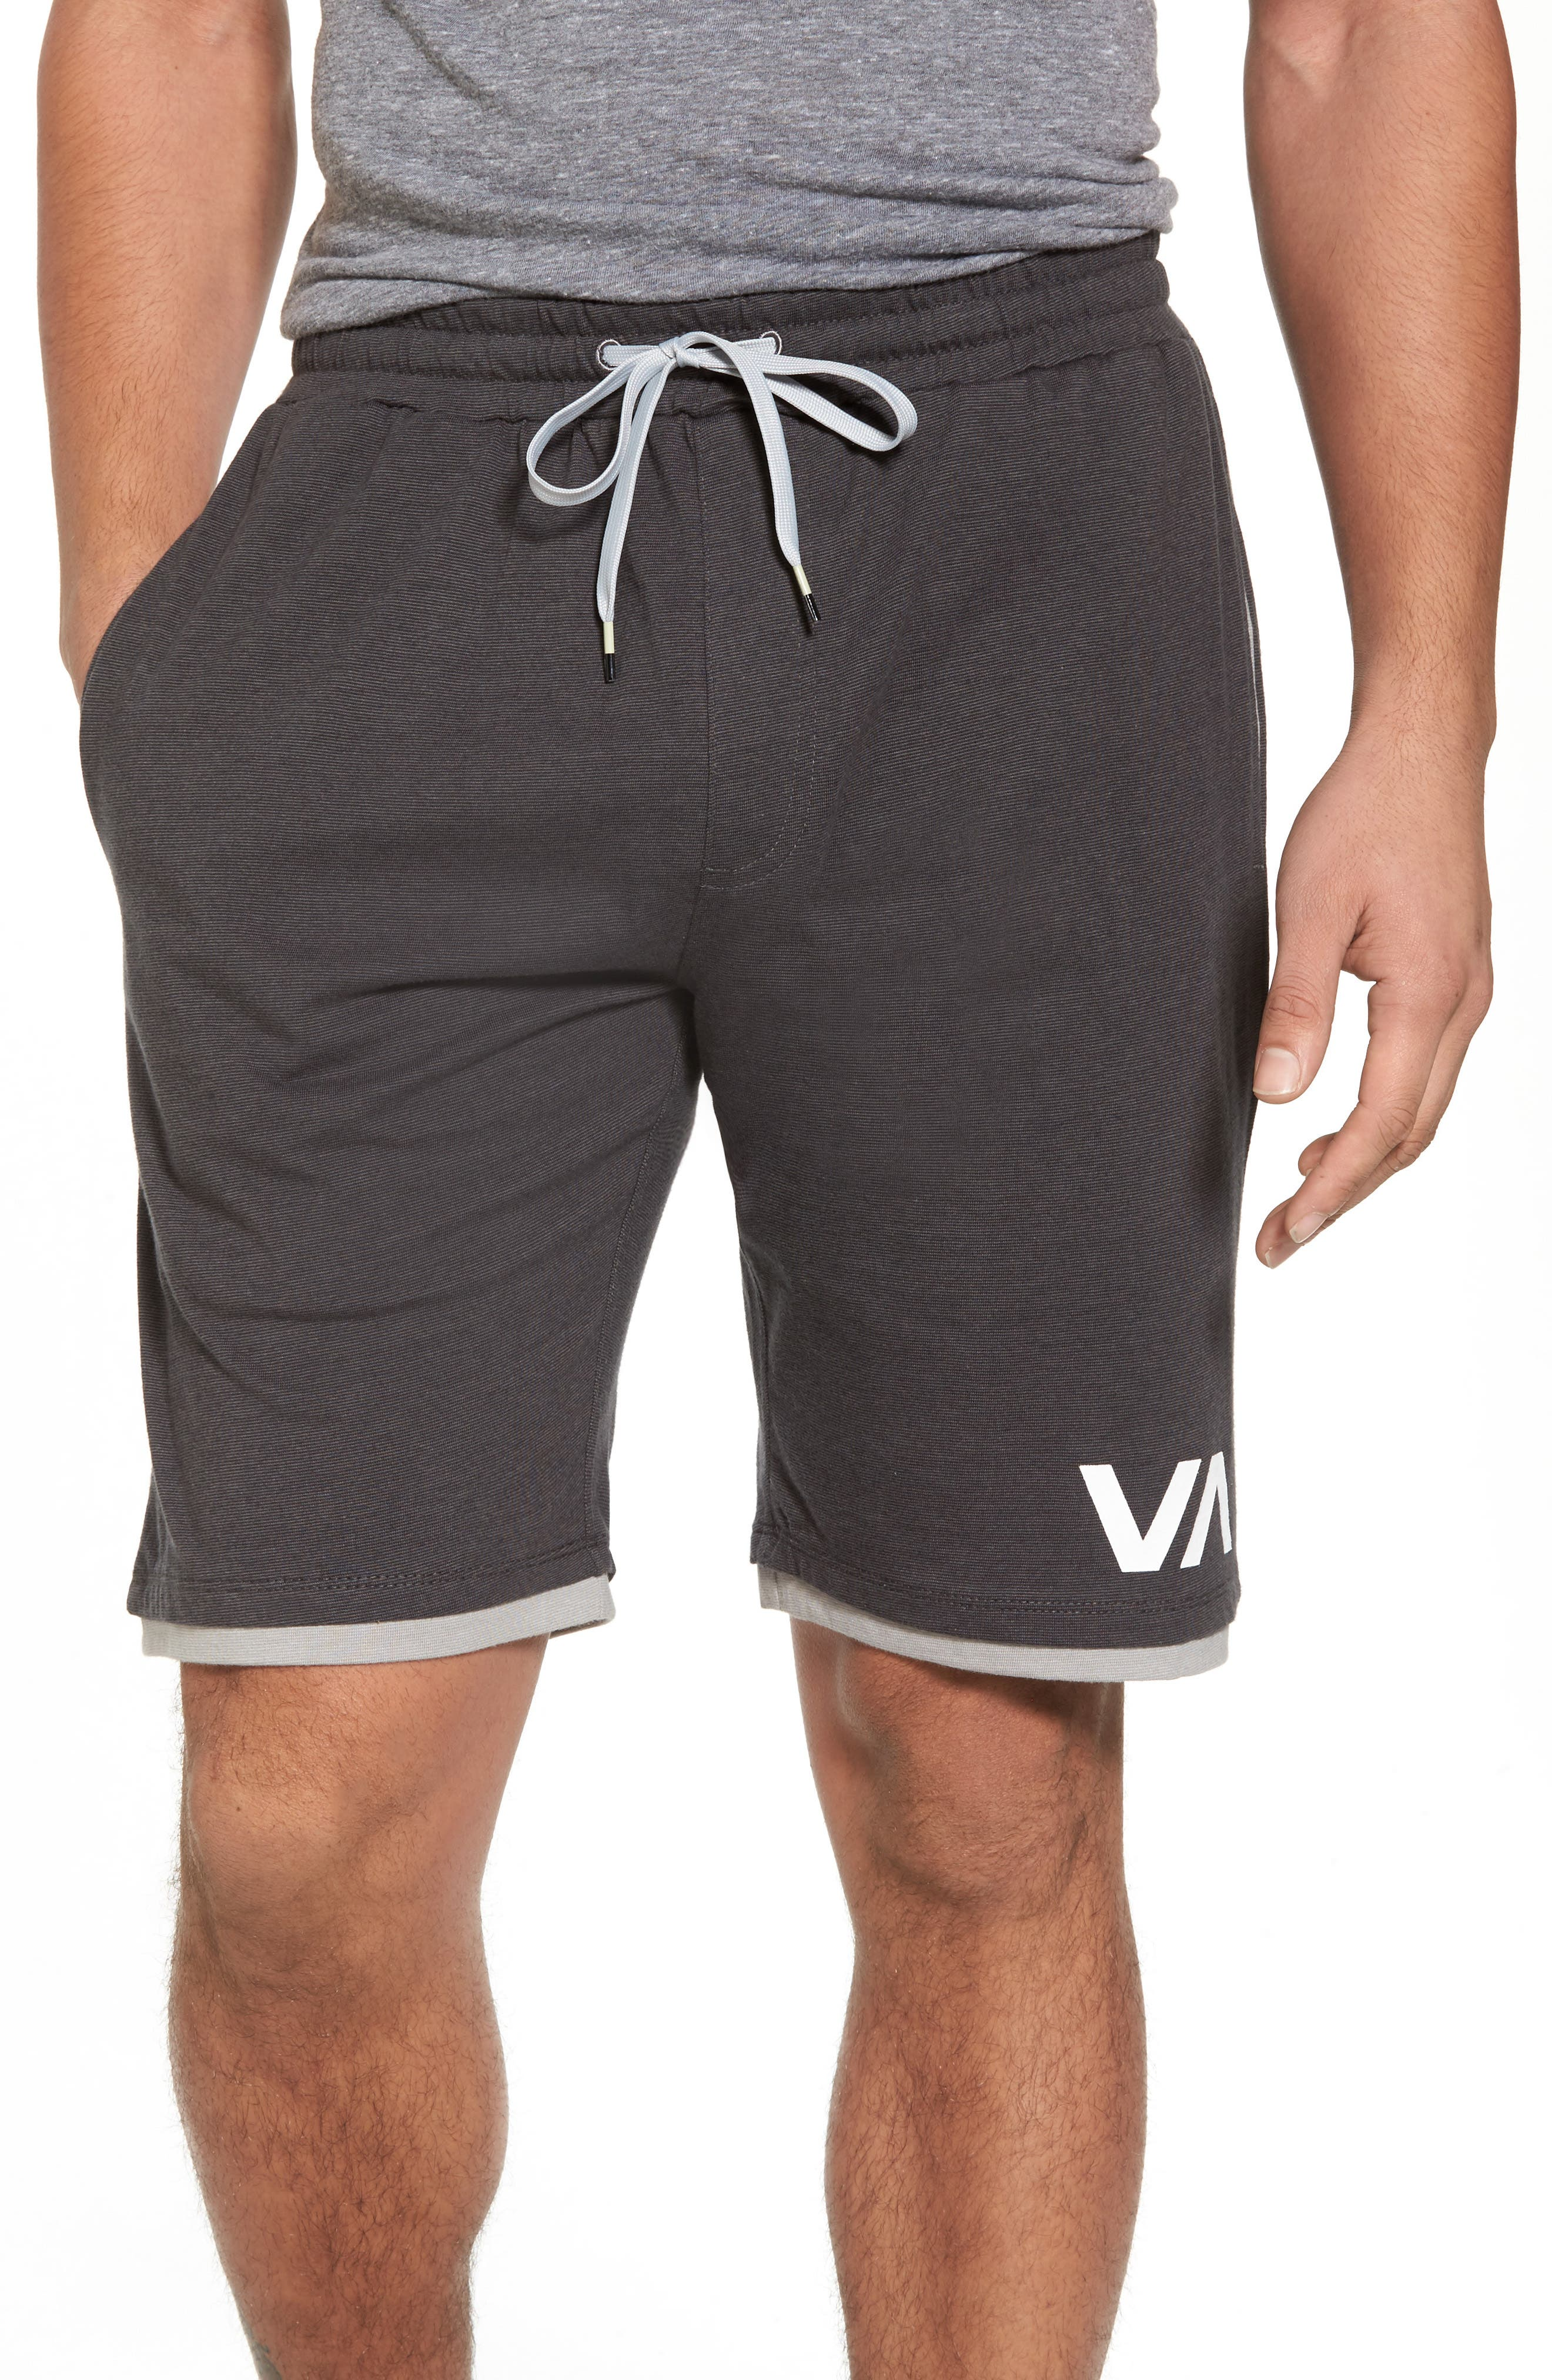 Layers Sport Shorts,                             Main thumbnail 1, color,                             001